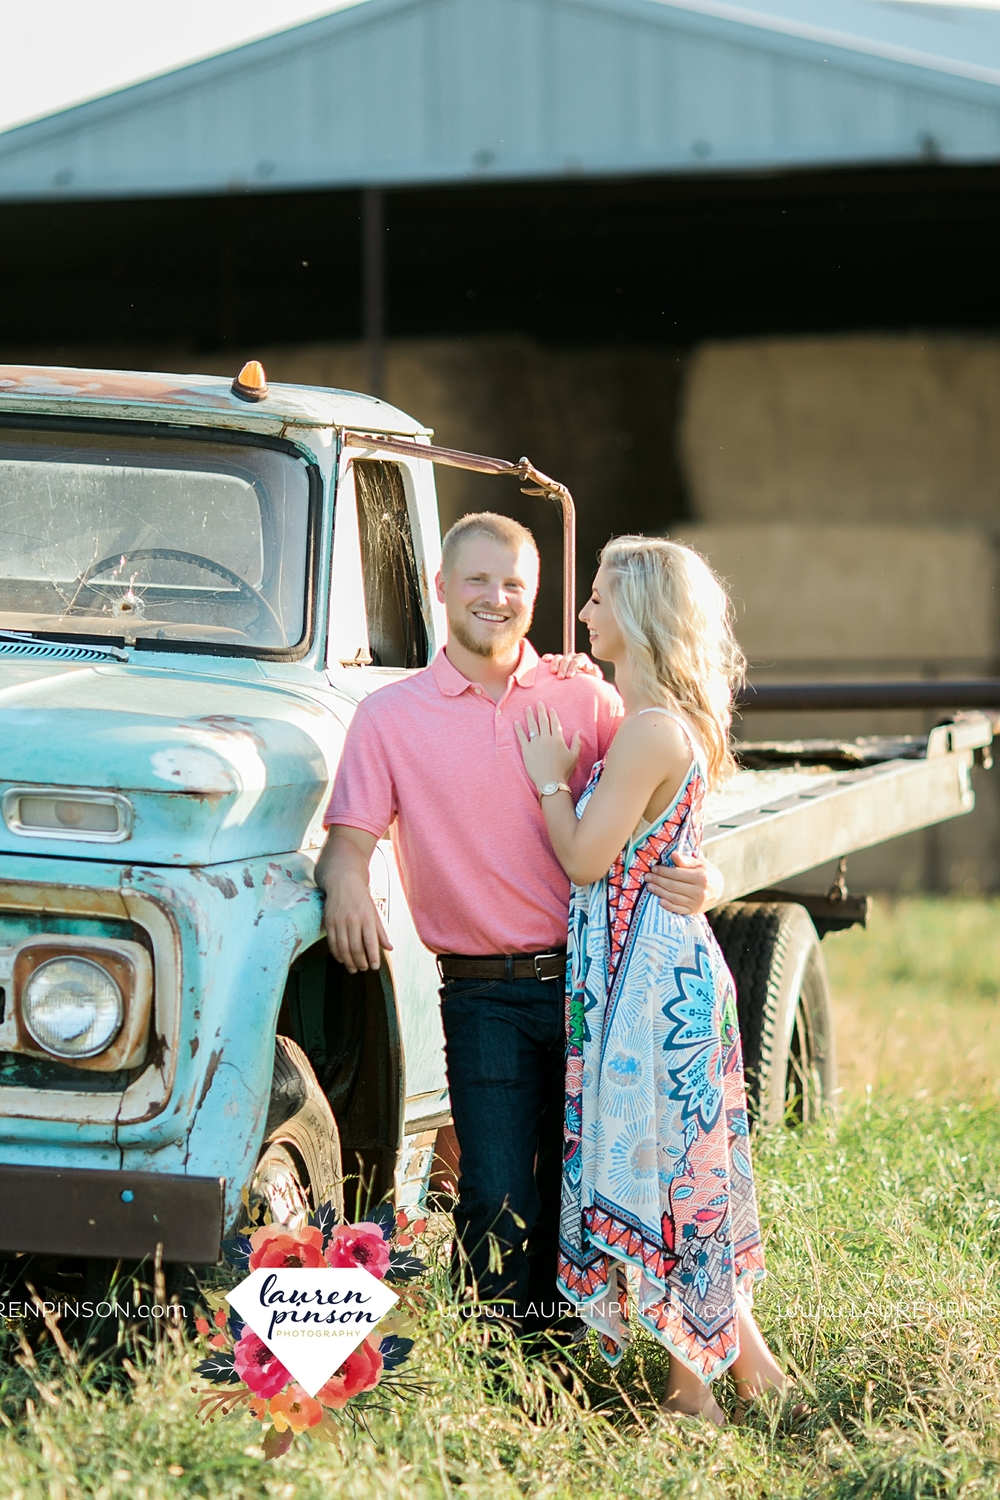 wichita-falls-texas-wedding-photographer-scotland-texas-engagement-session-country-barn-field-windthorst_2748.jpg